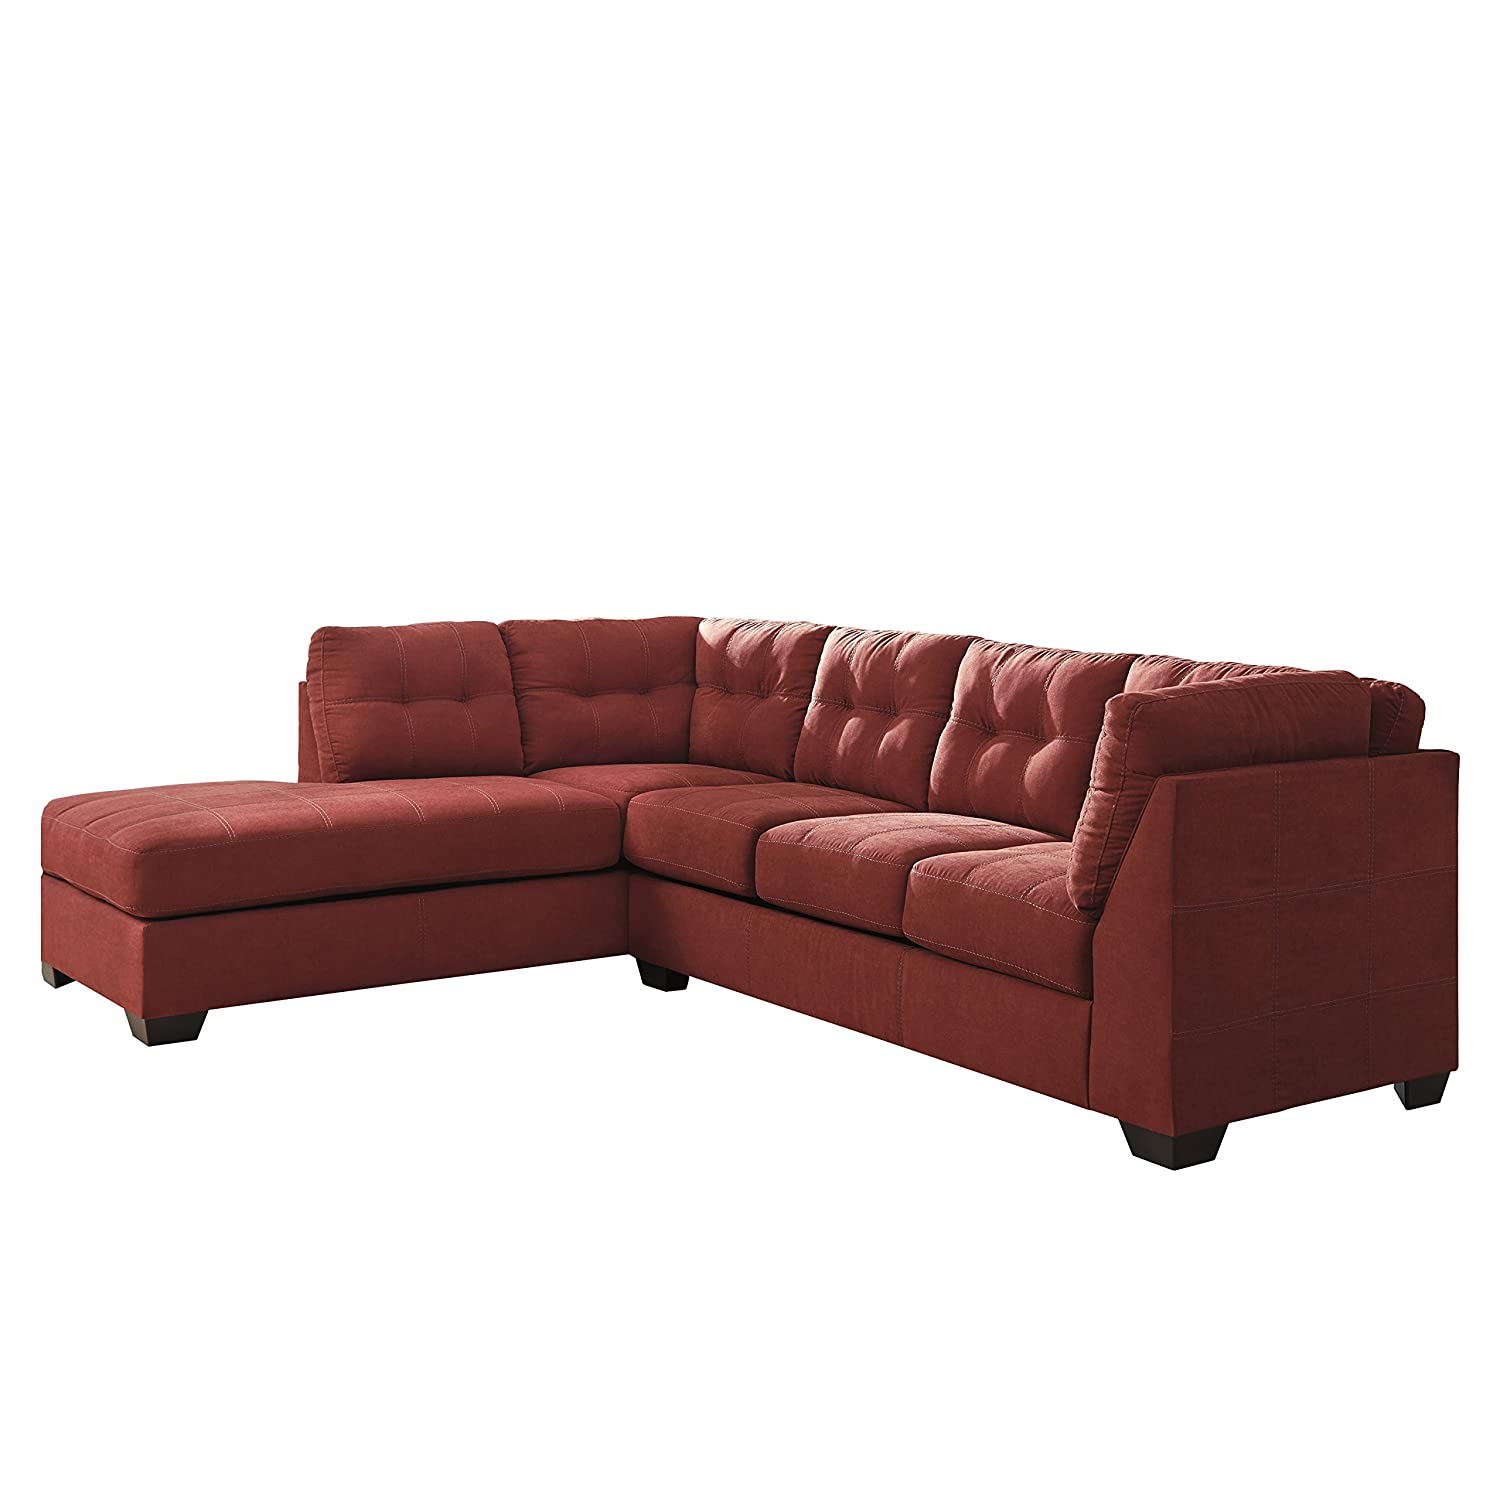 Benchcraft furniture 4piece sectional w armless sofa for Berkline chaise lounge